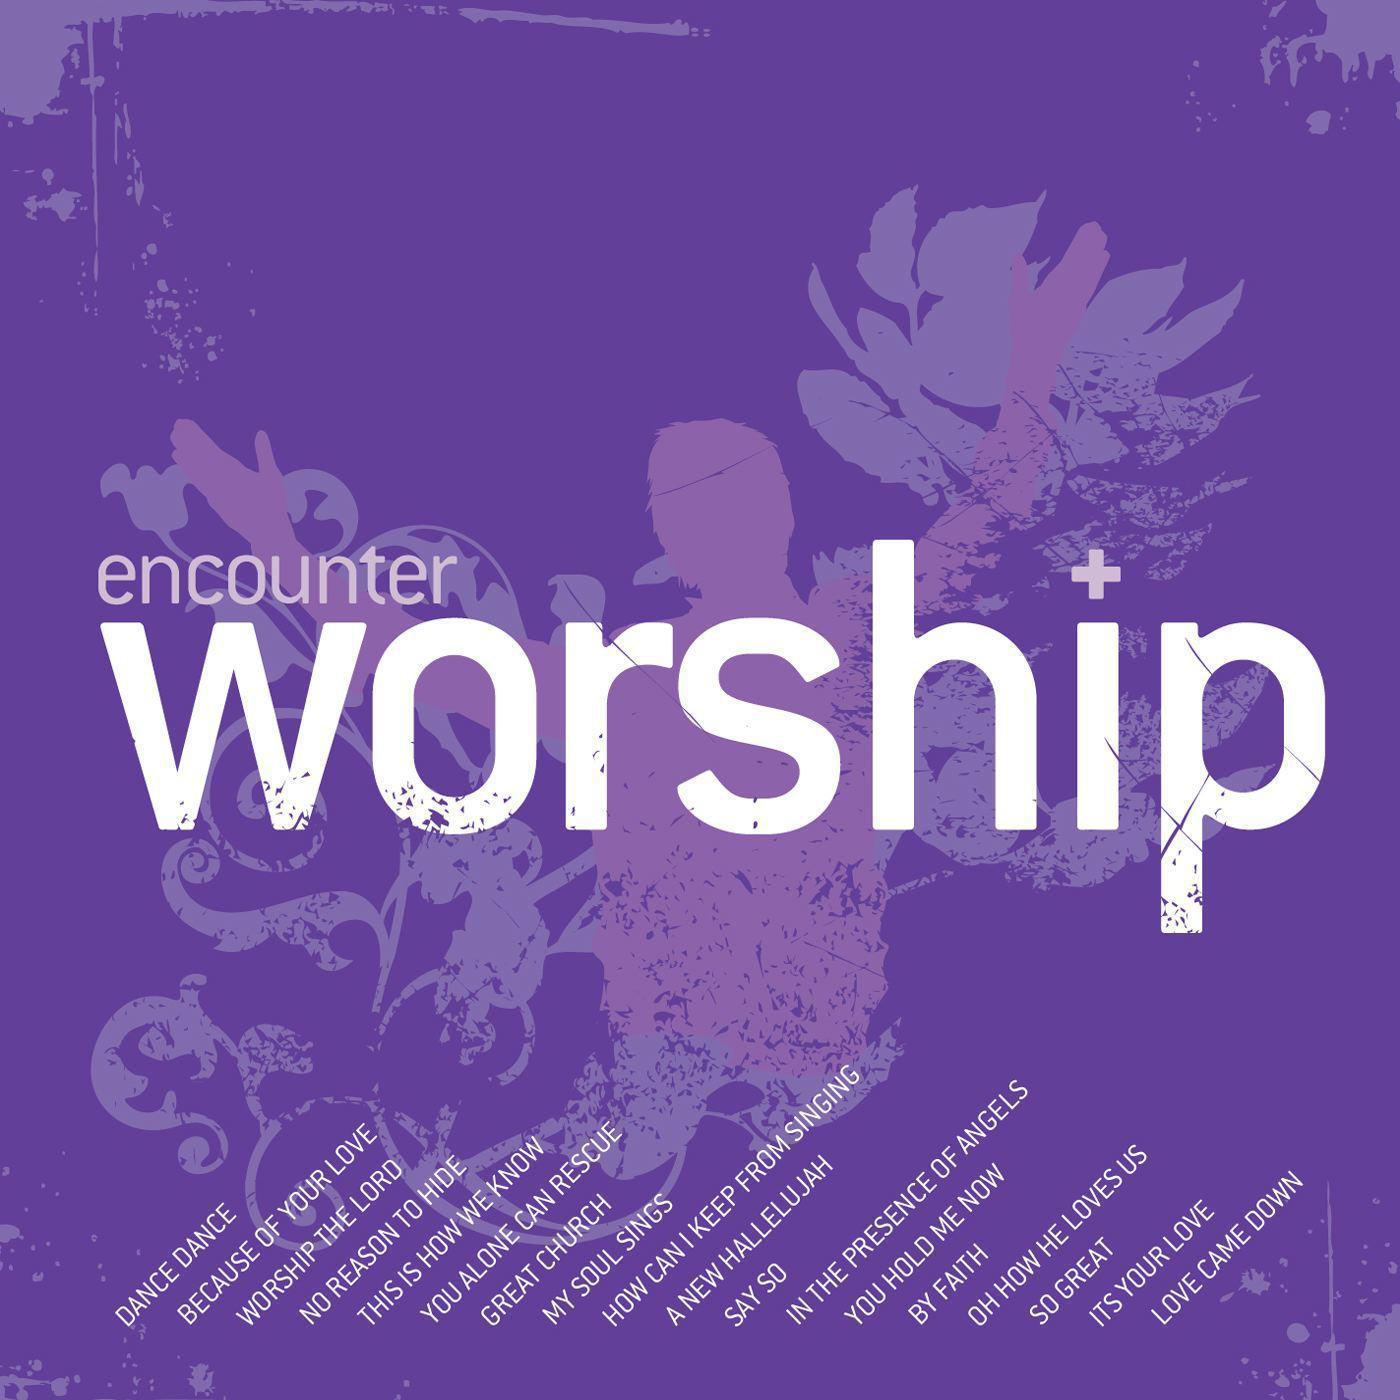 Encounter Worship 4